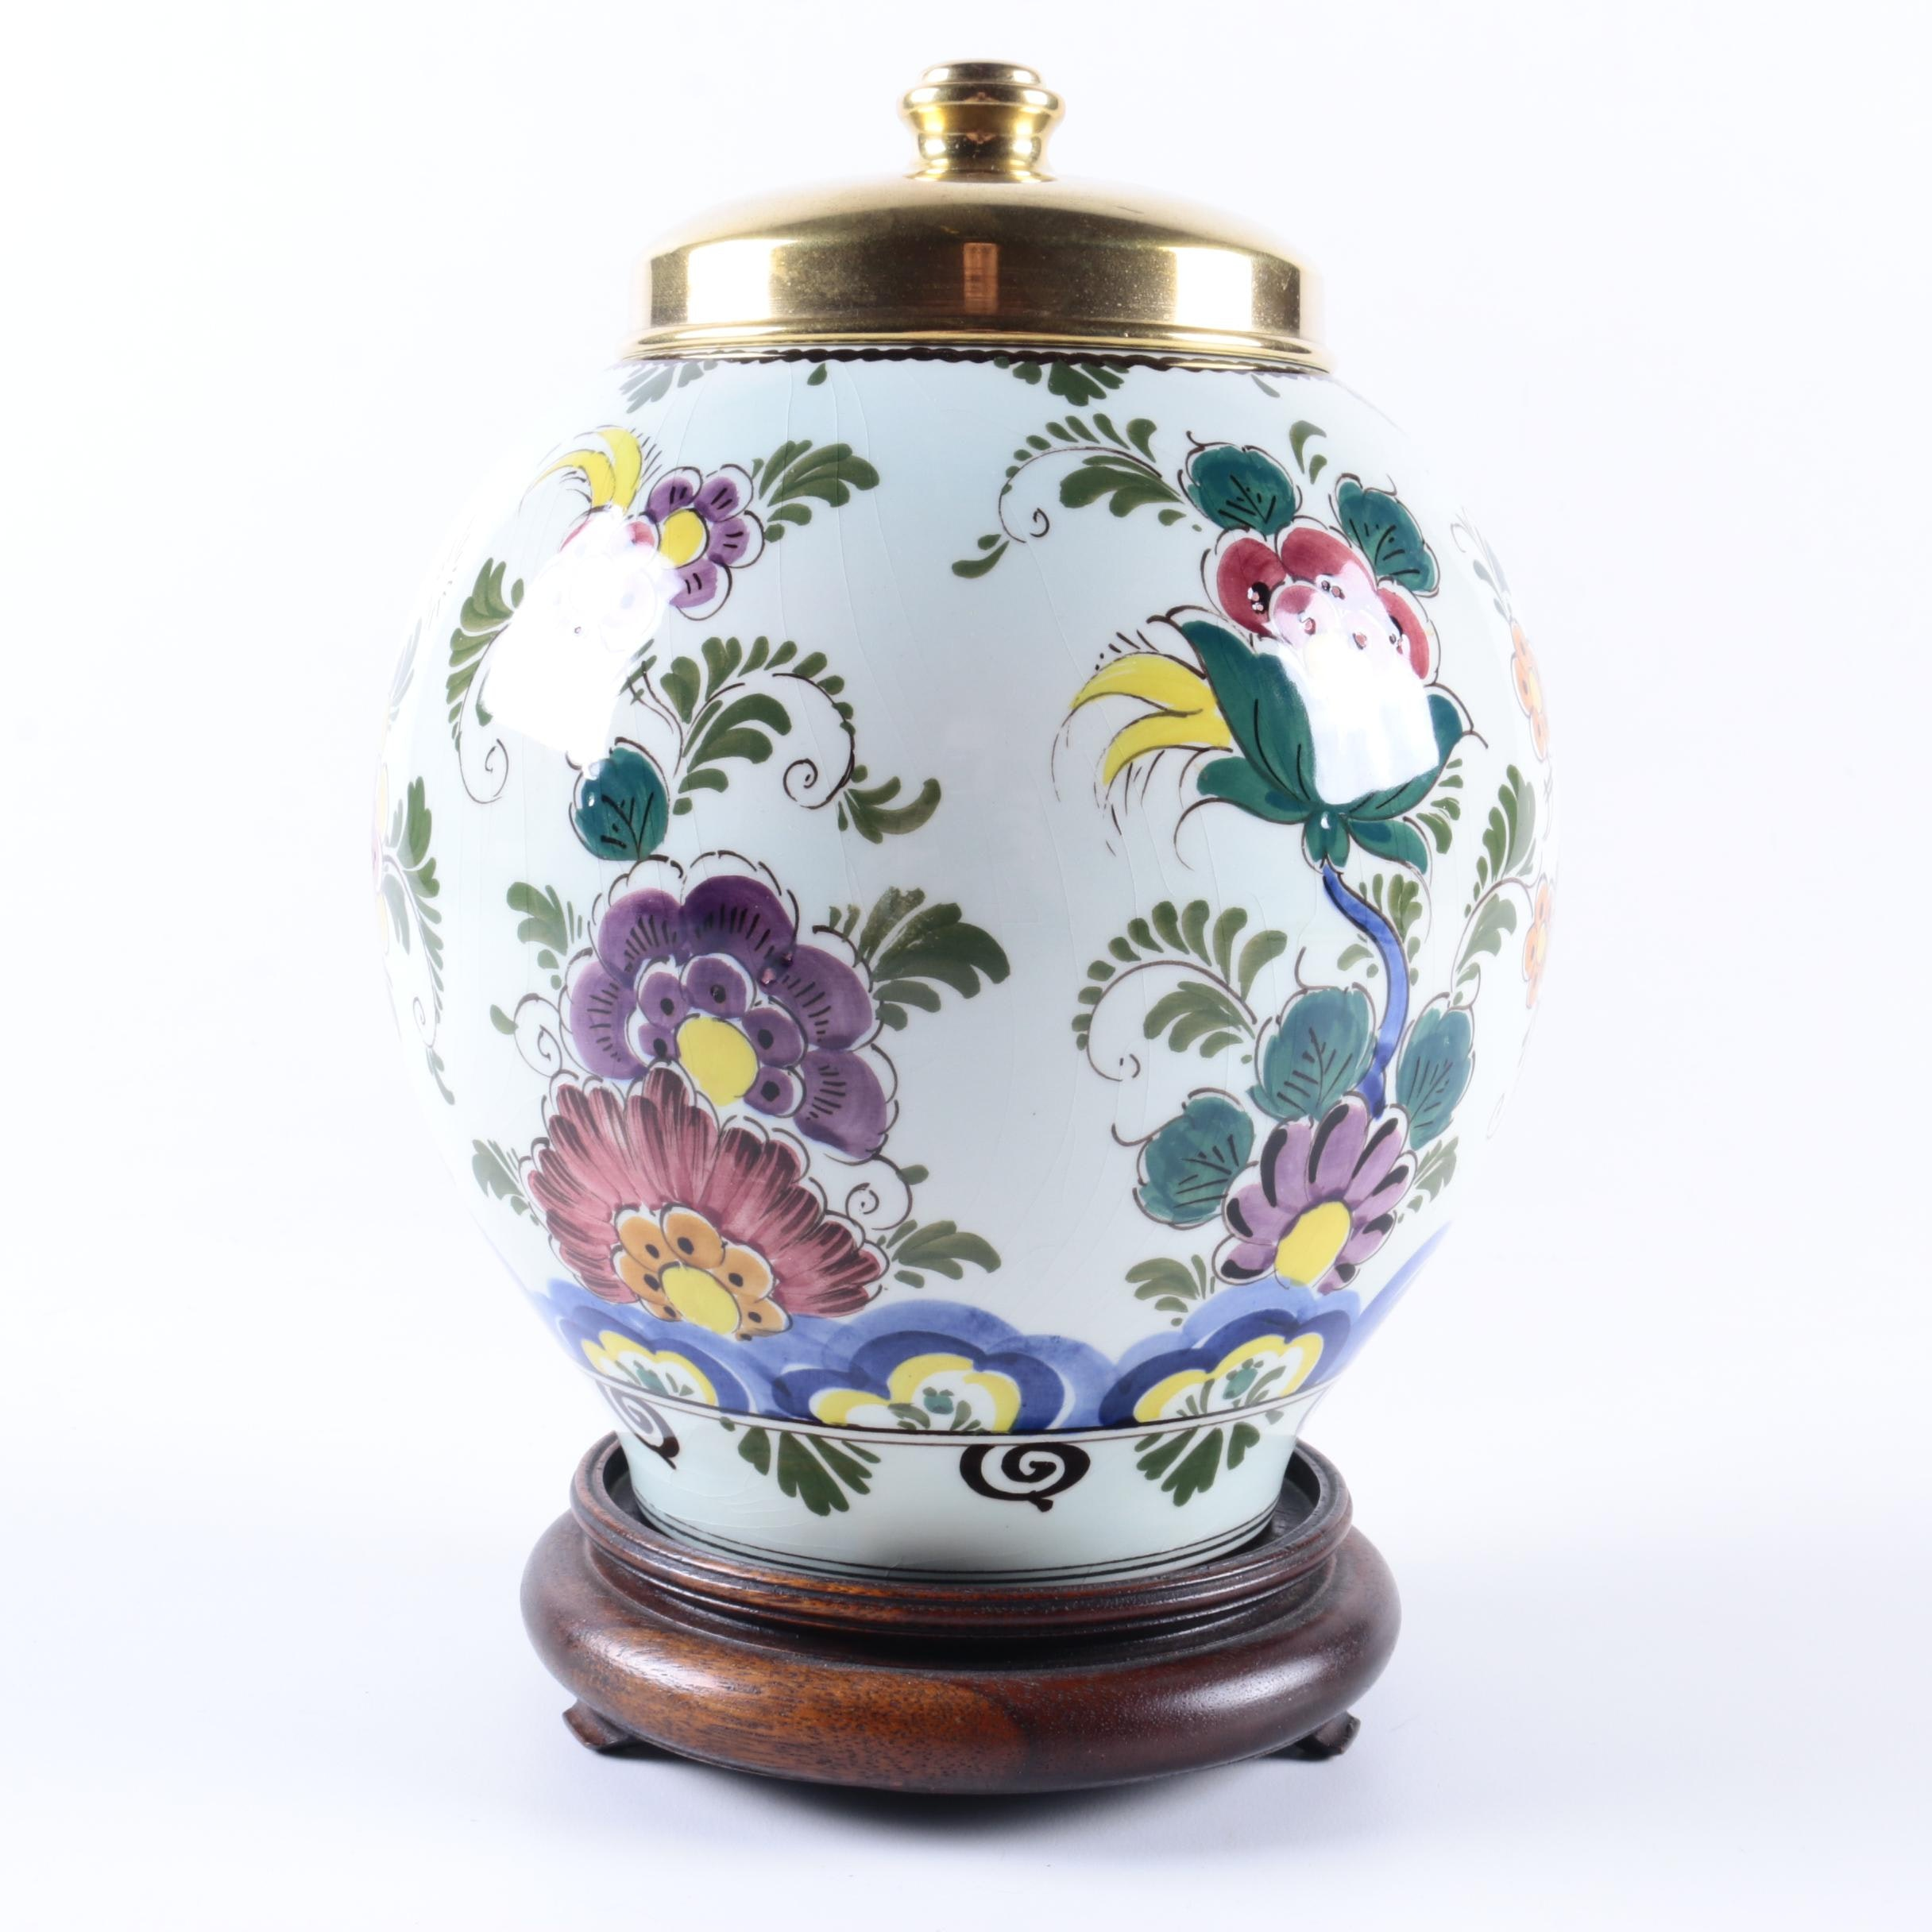 Velsen Delft Hand-Painted Tobacco Jar